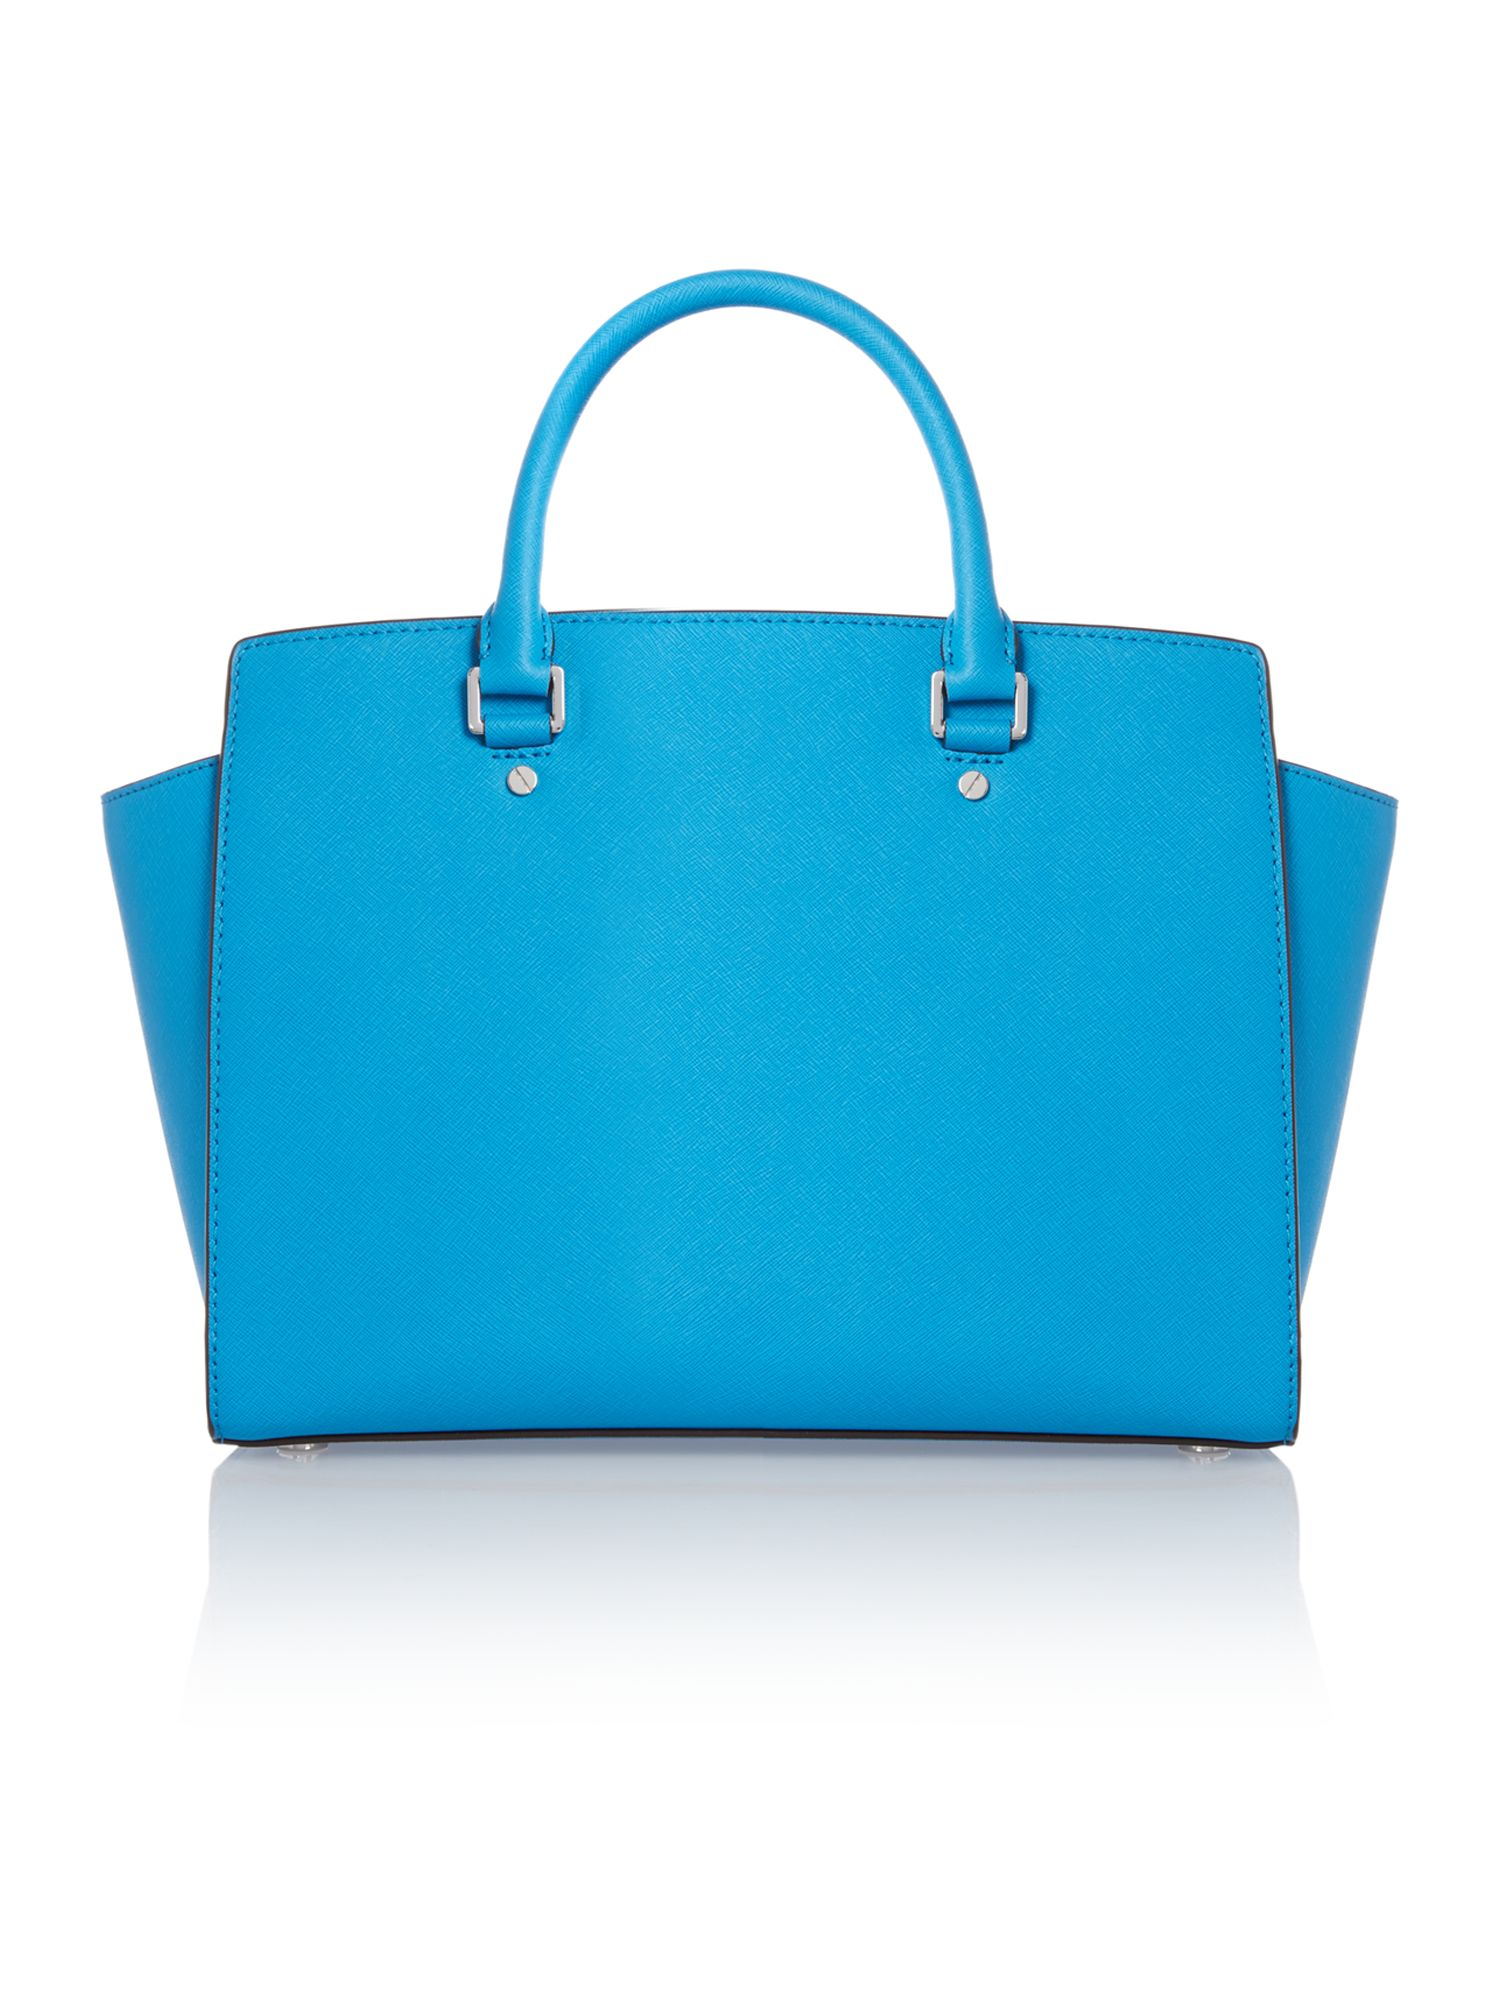 Selma blue tote bag